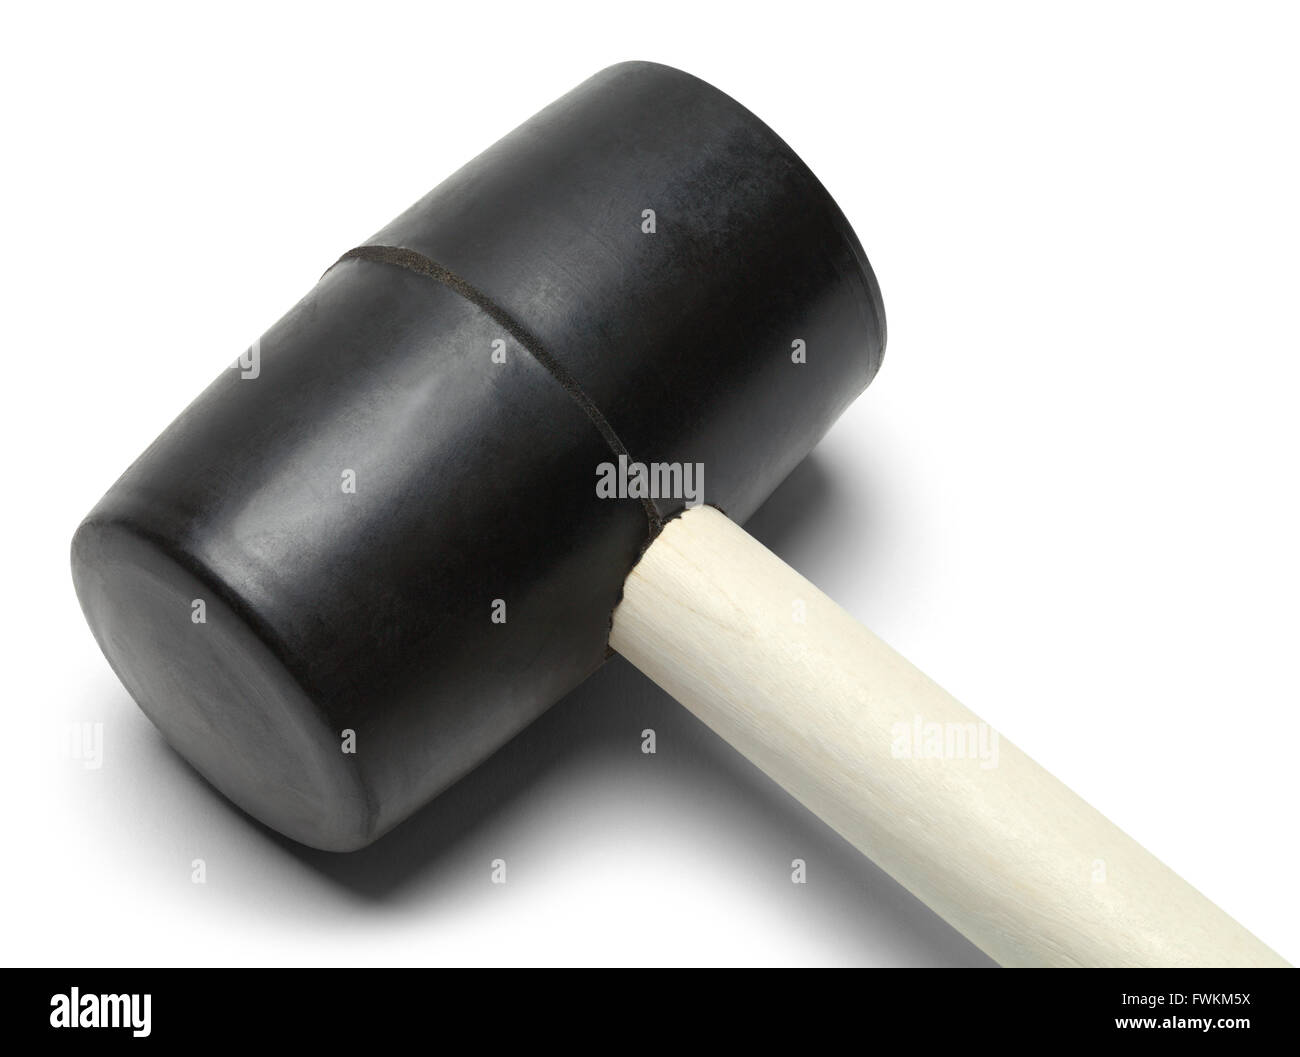 Black Rubber Mallet Isolated on White Background. - Stock Image